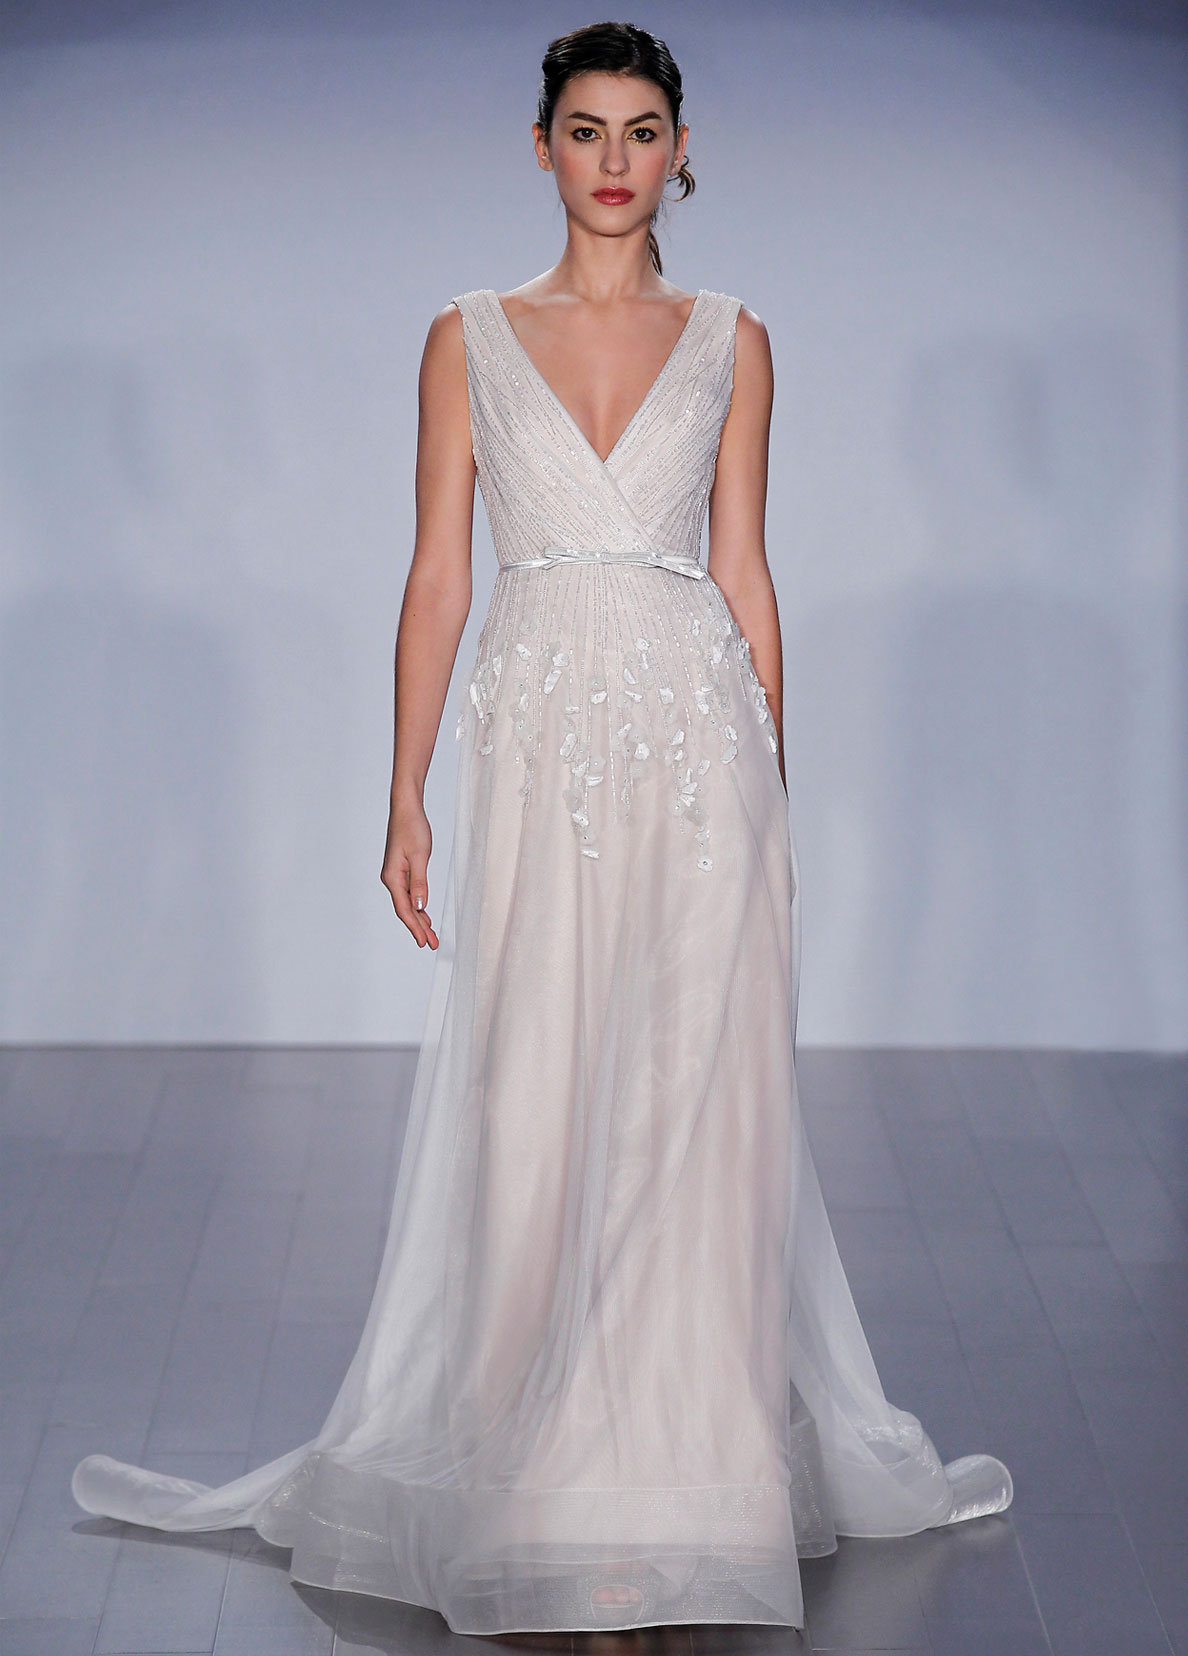 Bridal Gowns and Wedding Dresses by JLM Couture - Style 8505